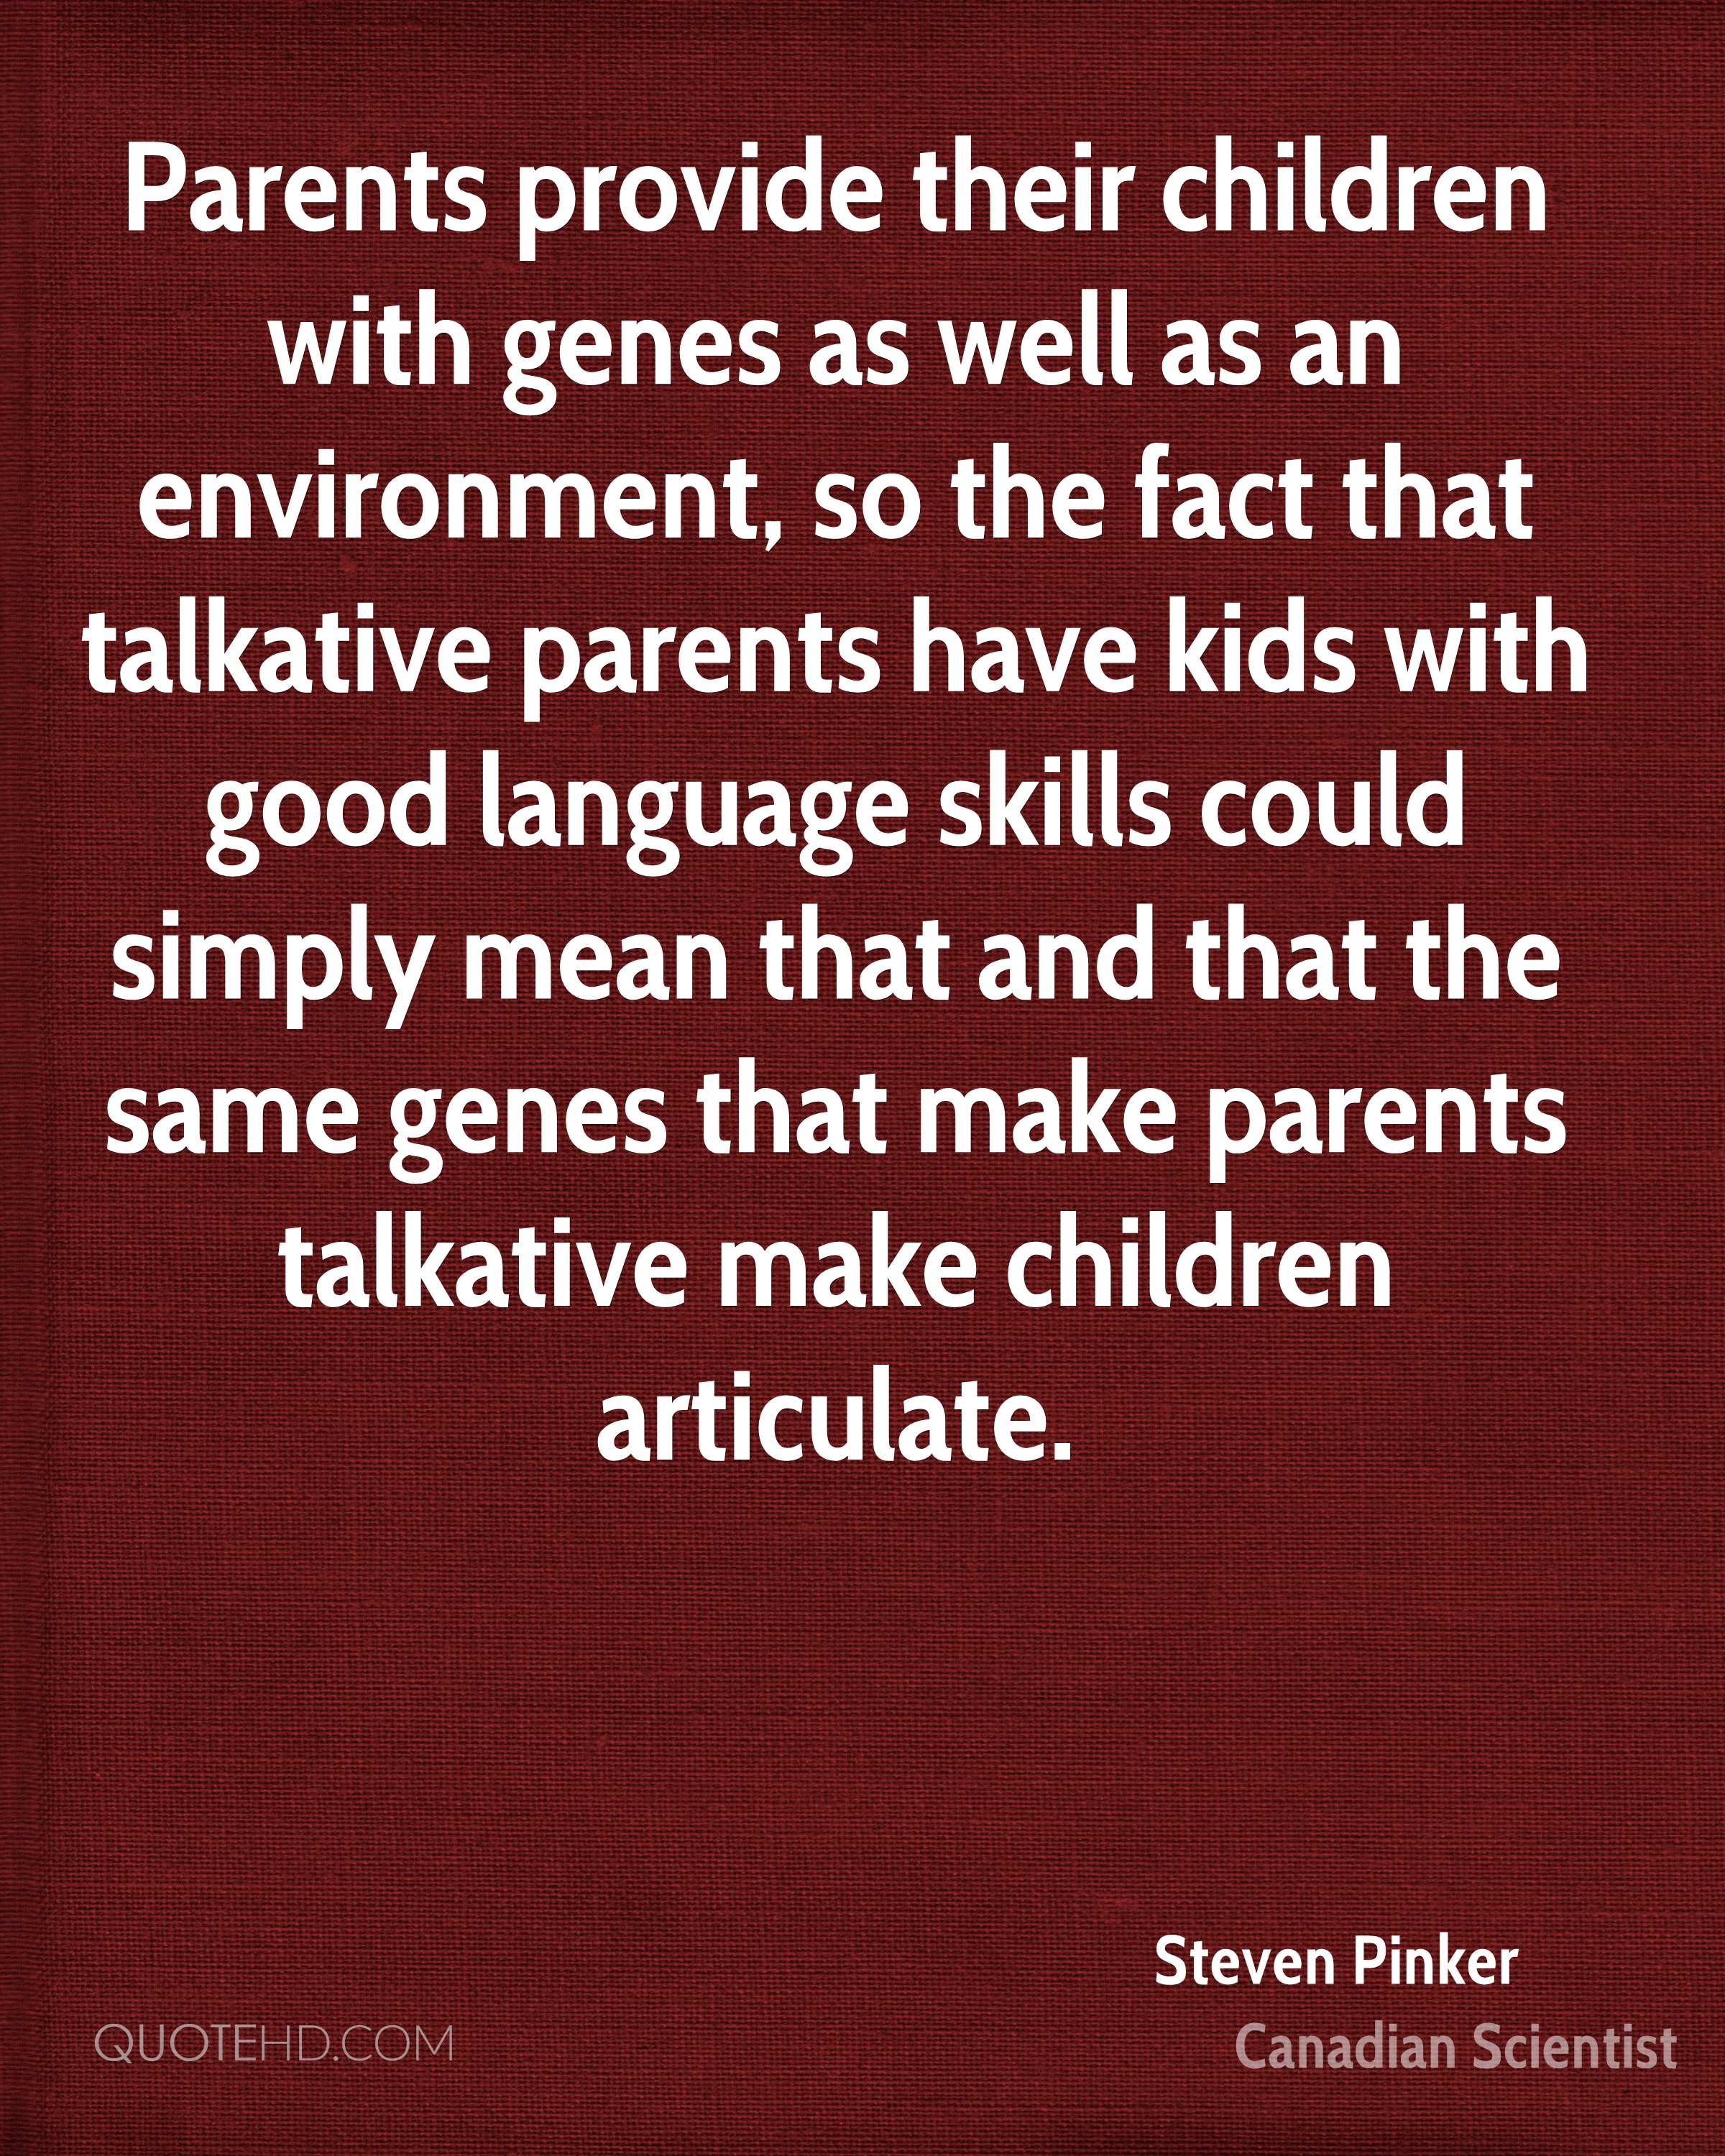 Parents provide their children with genes as well as an environment, so the fact that talkative parents have kids with good language skills could simply mean that and that the same genes that make parents talkative make children articulate.